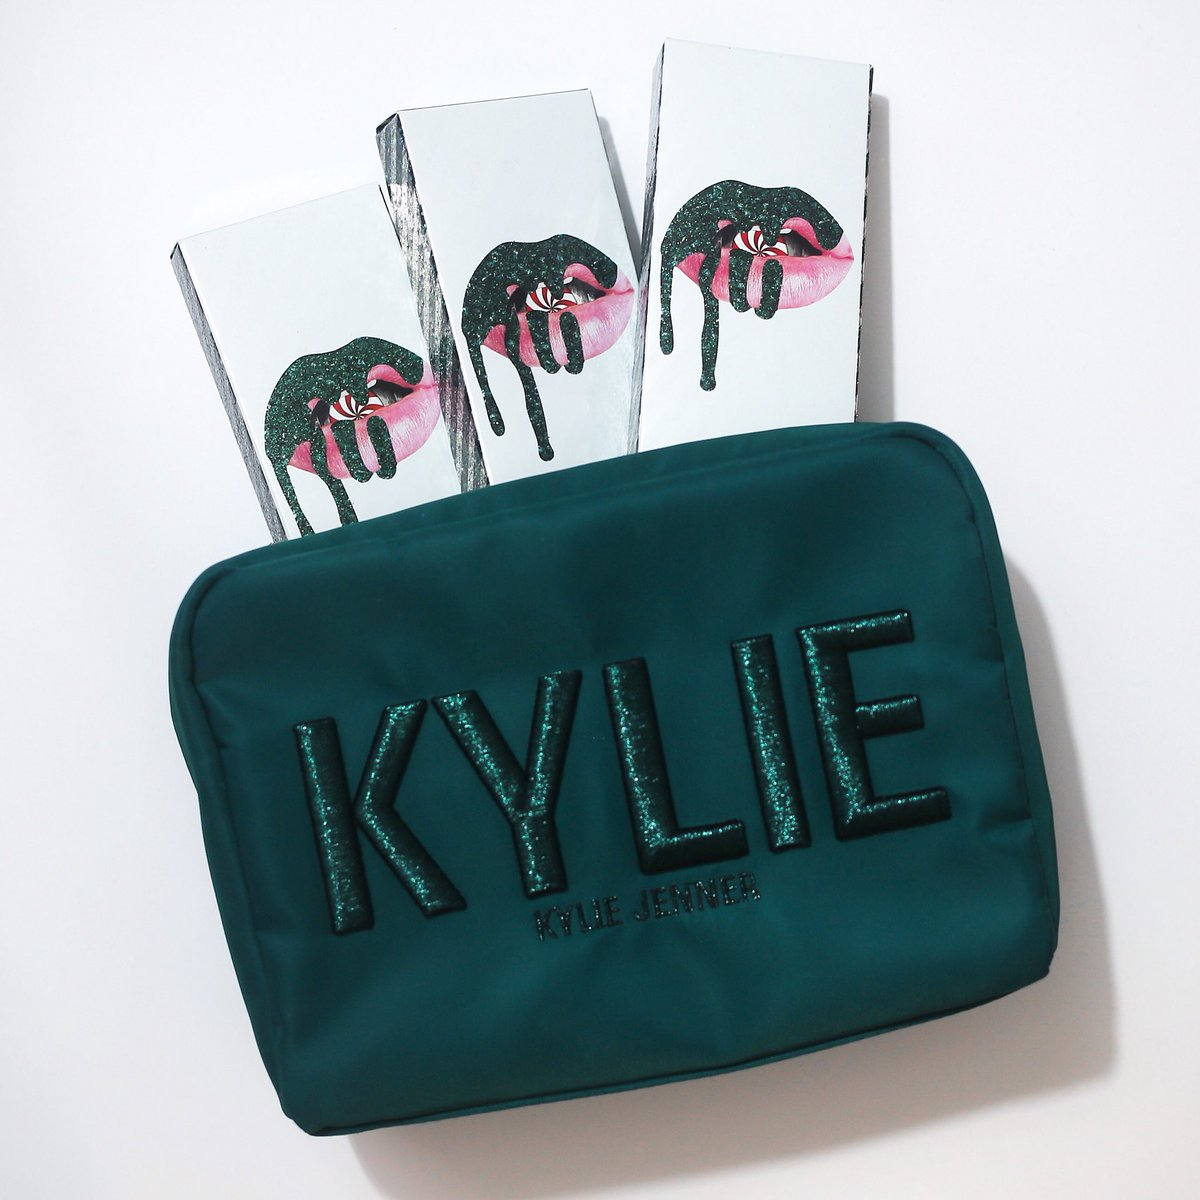 Kylie Cosmetics On Twitter Kylie Holiday 2017 Cosmetics Bags The Perfect Holiday Red Red Velvet Lip Kit Are Available Now Https T Co Rkt2b8jjl5 Https T Co Ac8ztk2wb5